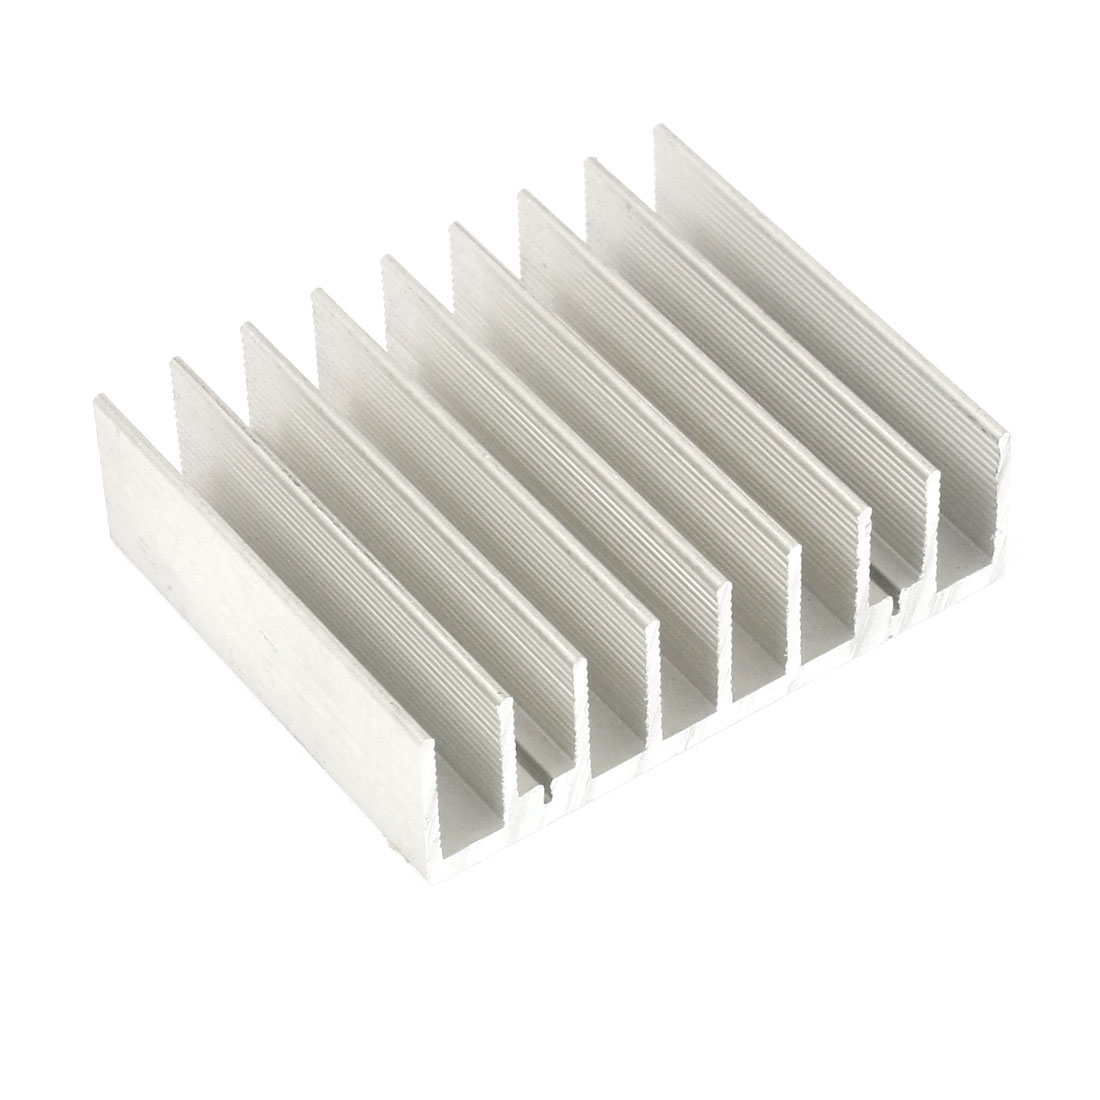 Silver White 60mmx50mmx17mm LED Heat Sink Aluminum Cooling Fin